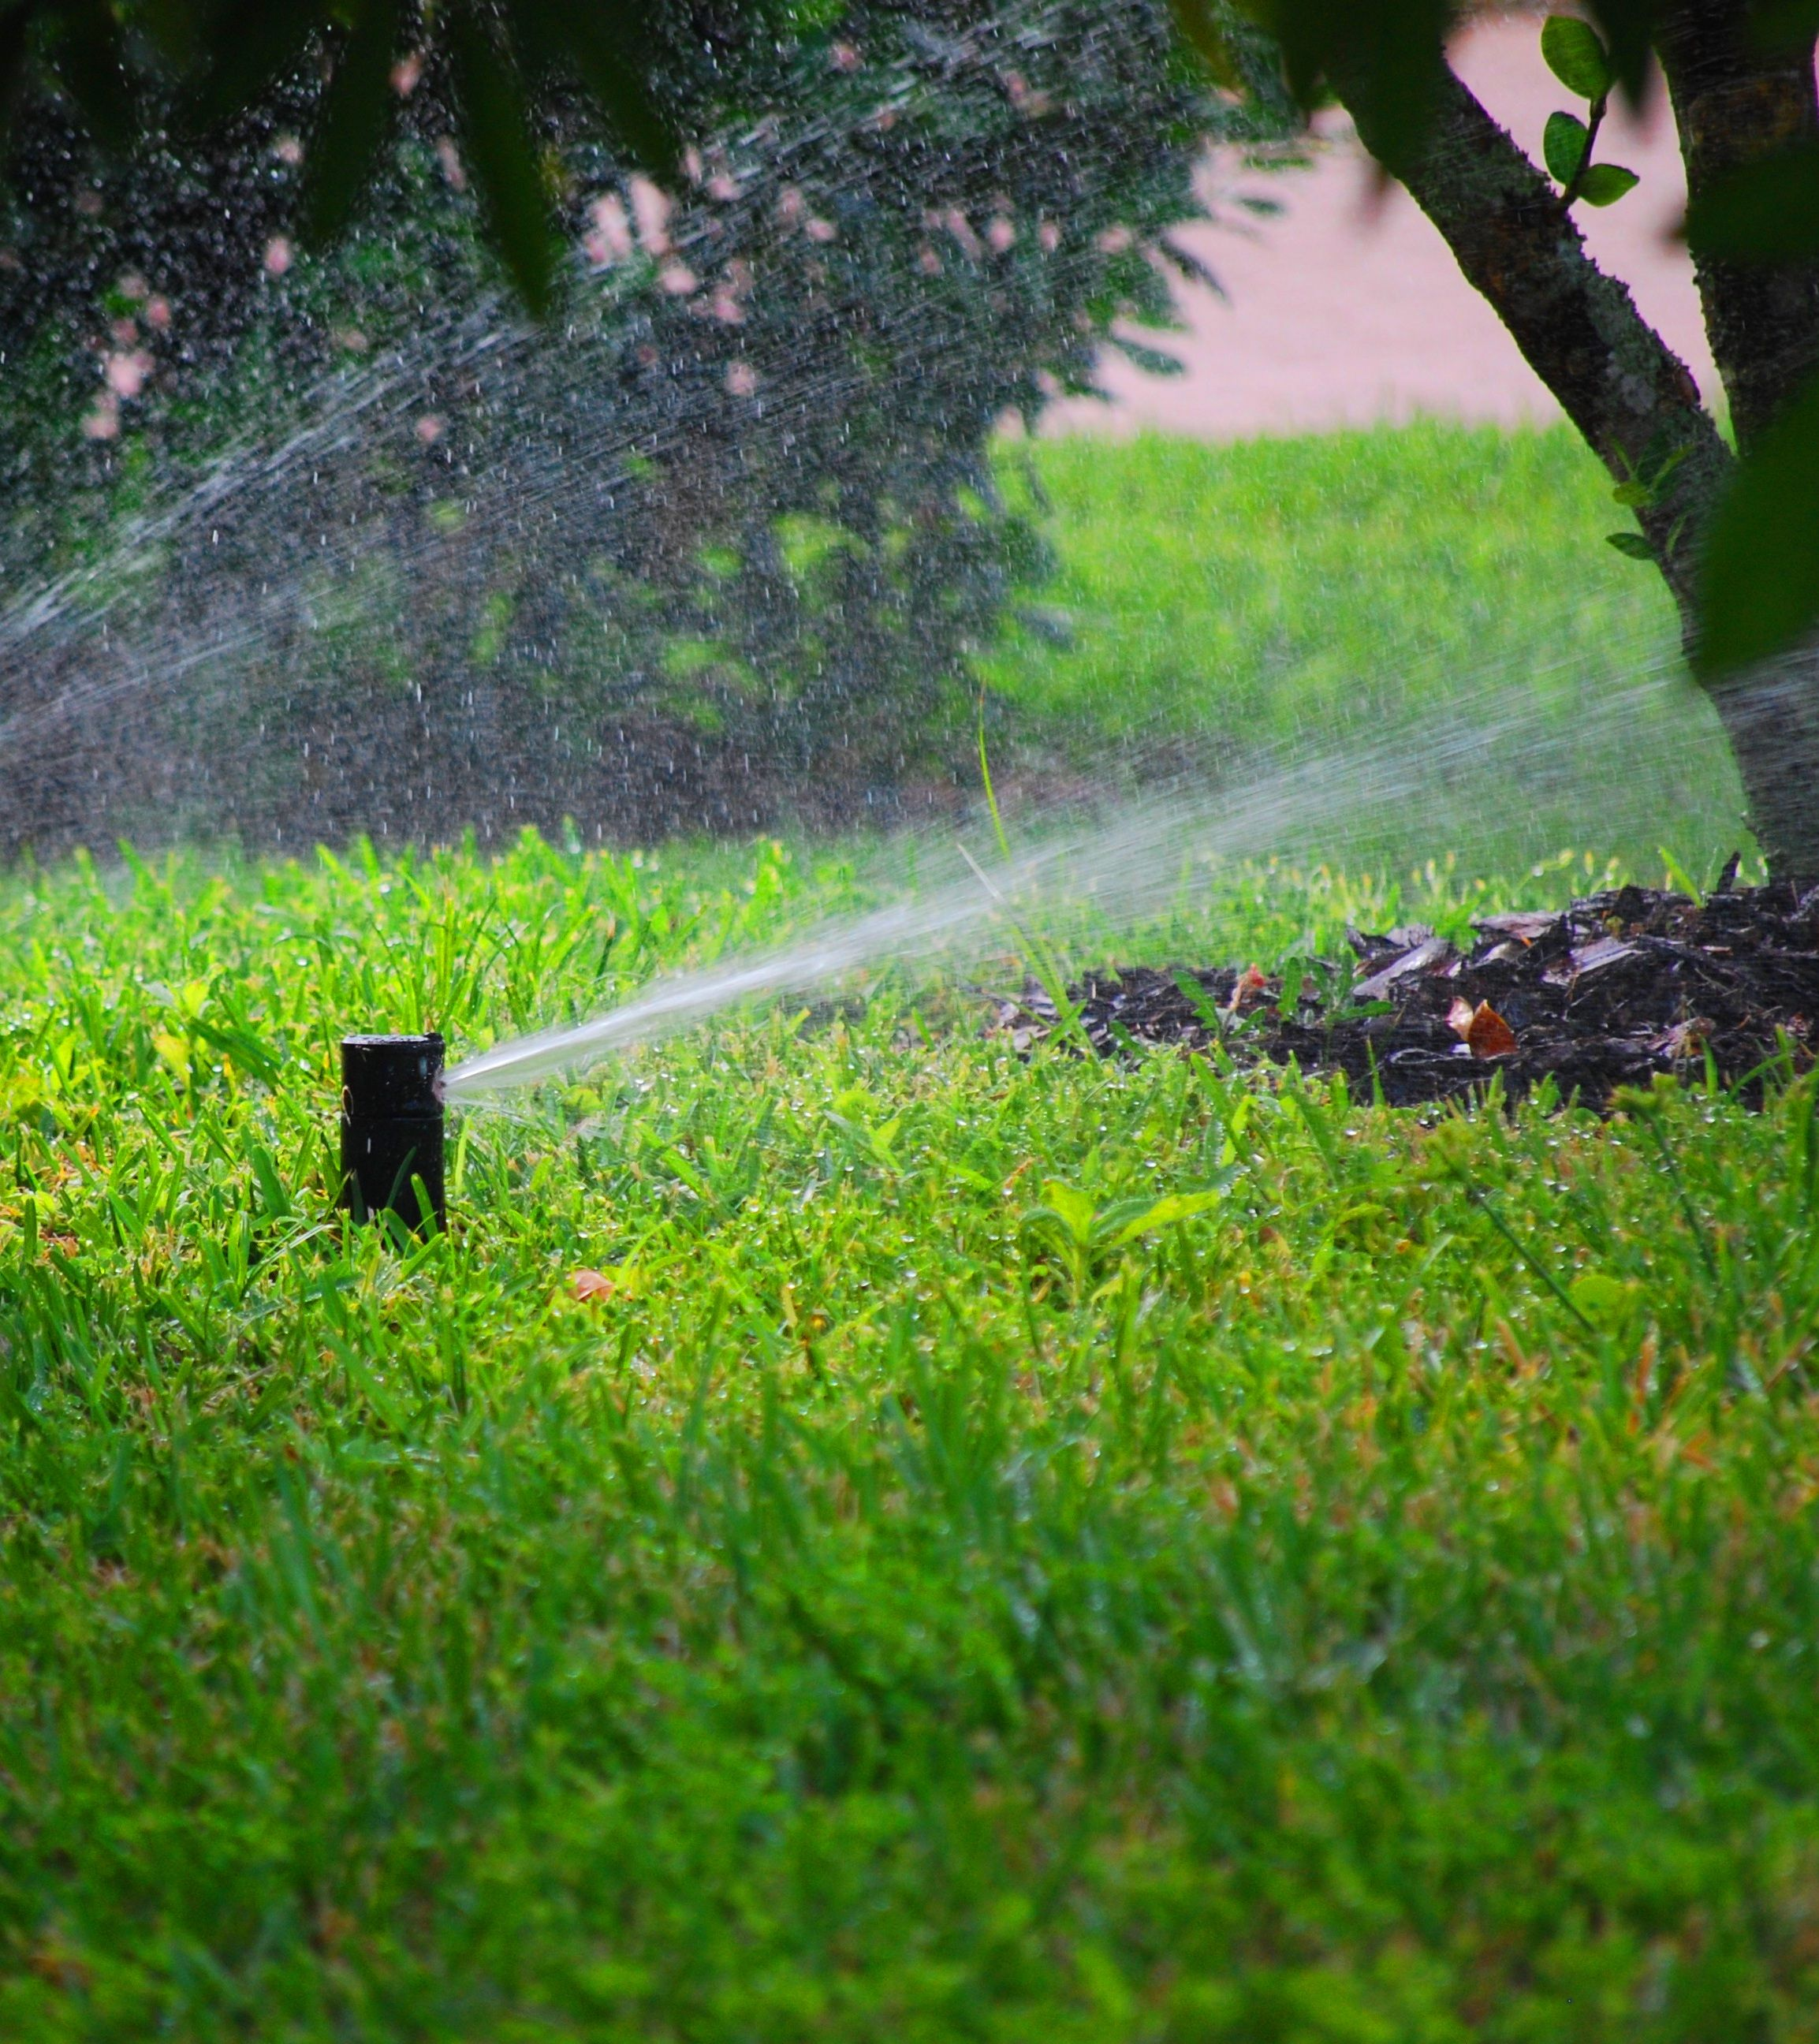 AAction Sprinkler Repair in the Orlando Area - Call 407-774-6648 for